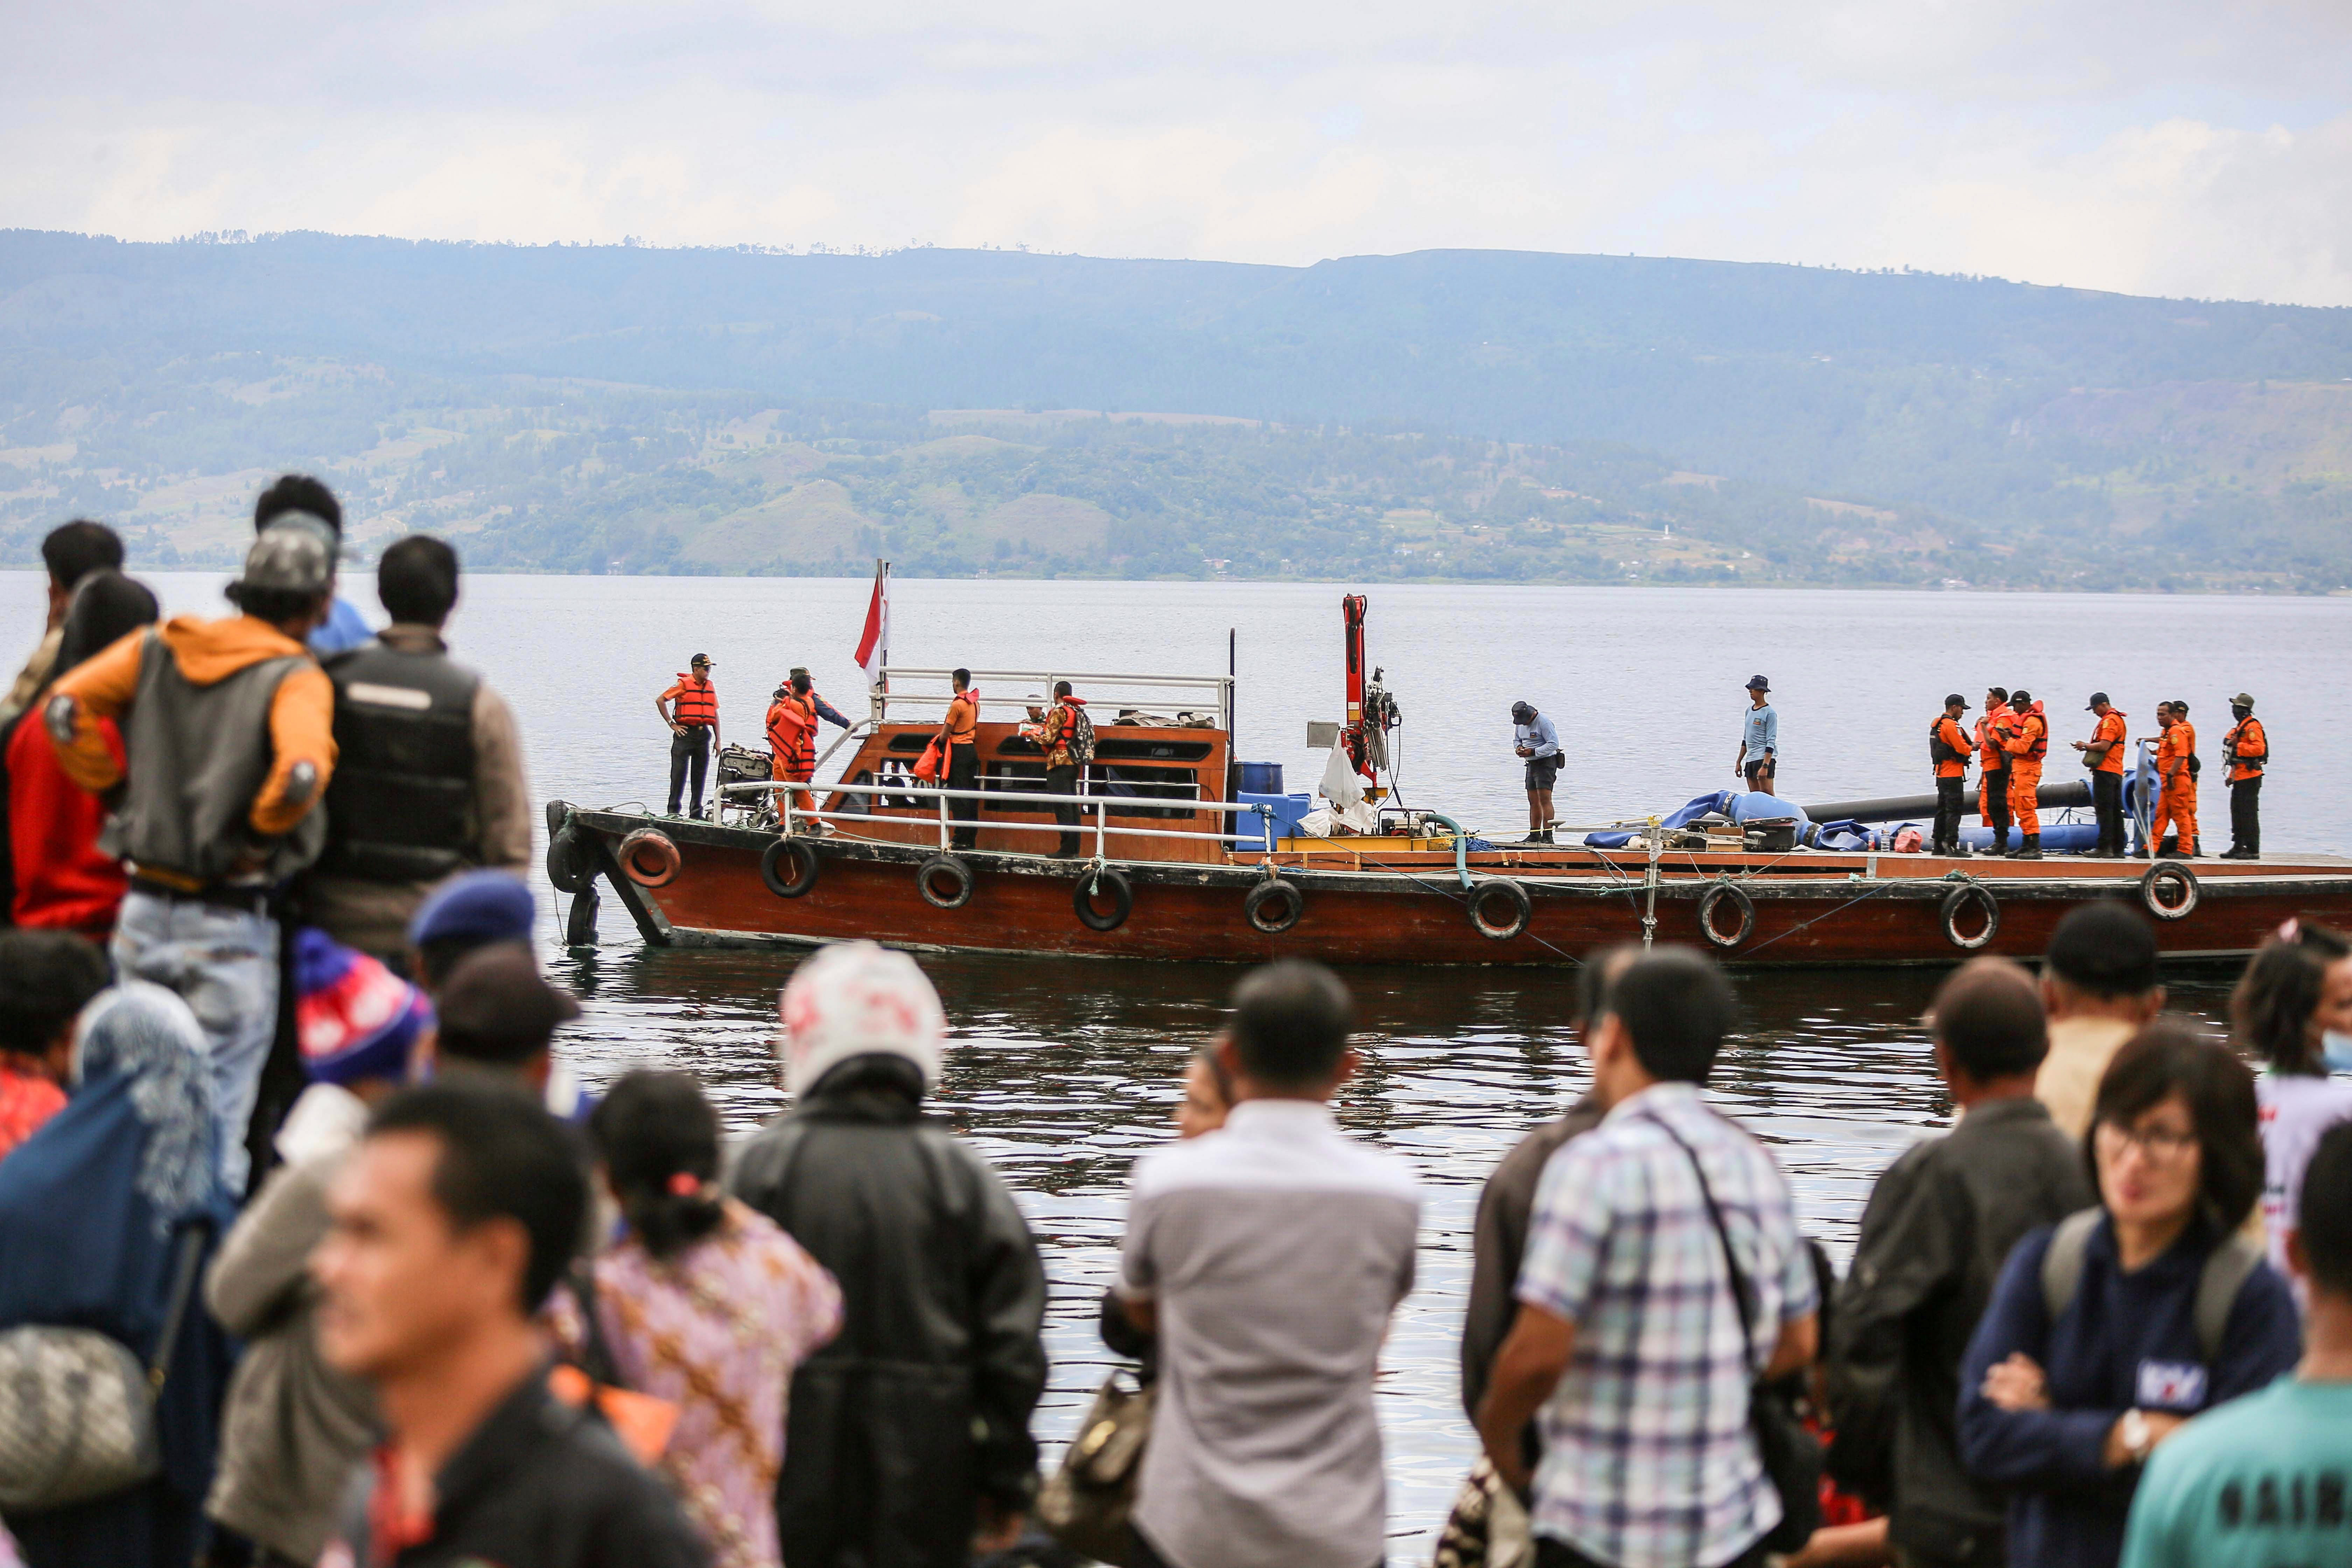 An Indonesian search and rescue team looks for victims of the sunken KM Sinar Bangun ferry on Lake Toba in North Sumarta, Indonesia on June 22, 2018. On June 18 a ferry carrying more than 180 passengers capsized on Lake Toba killing at least three pe